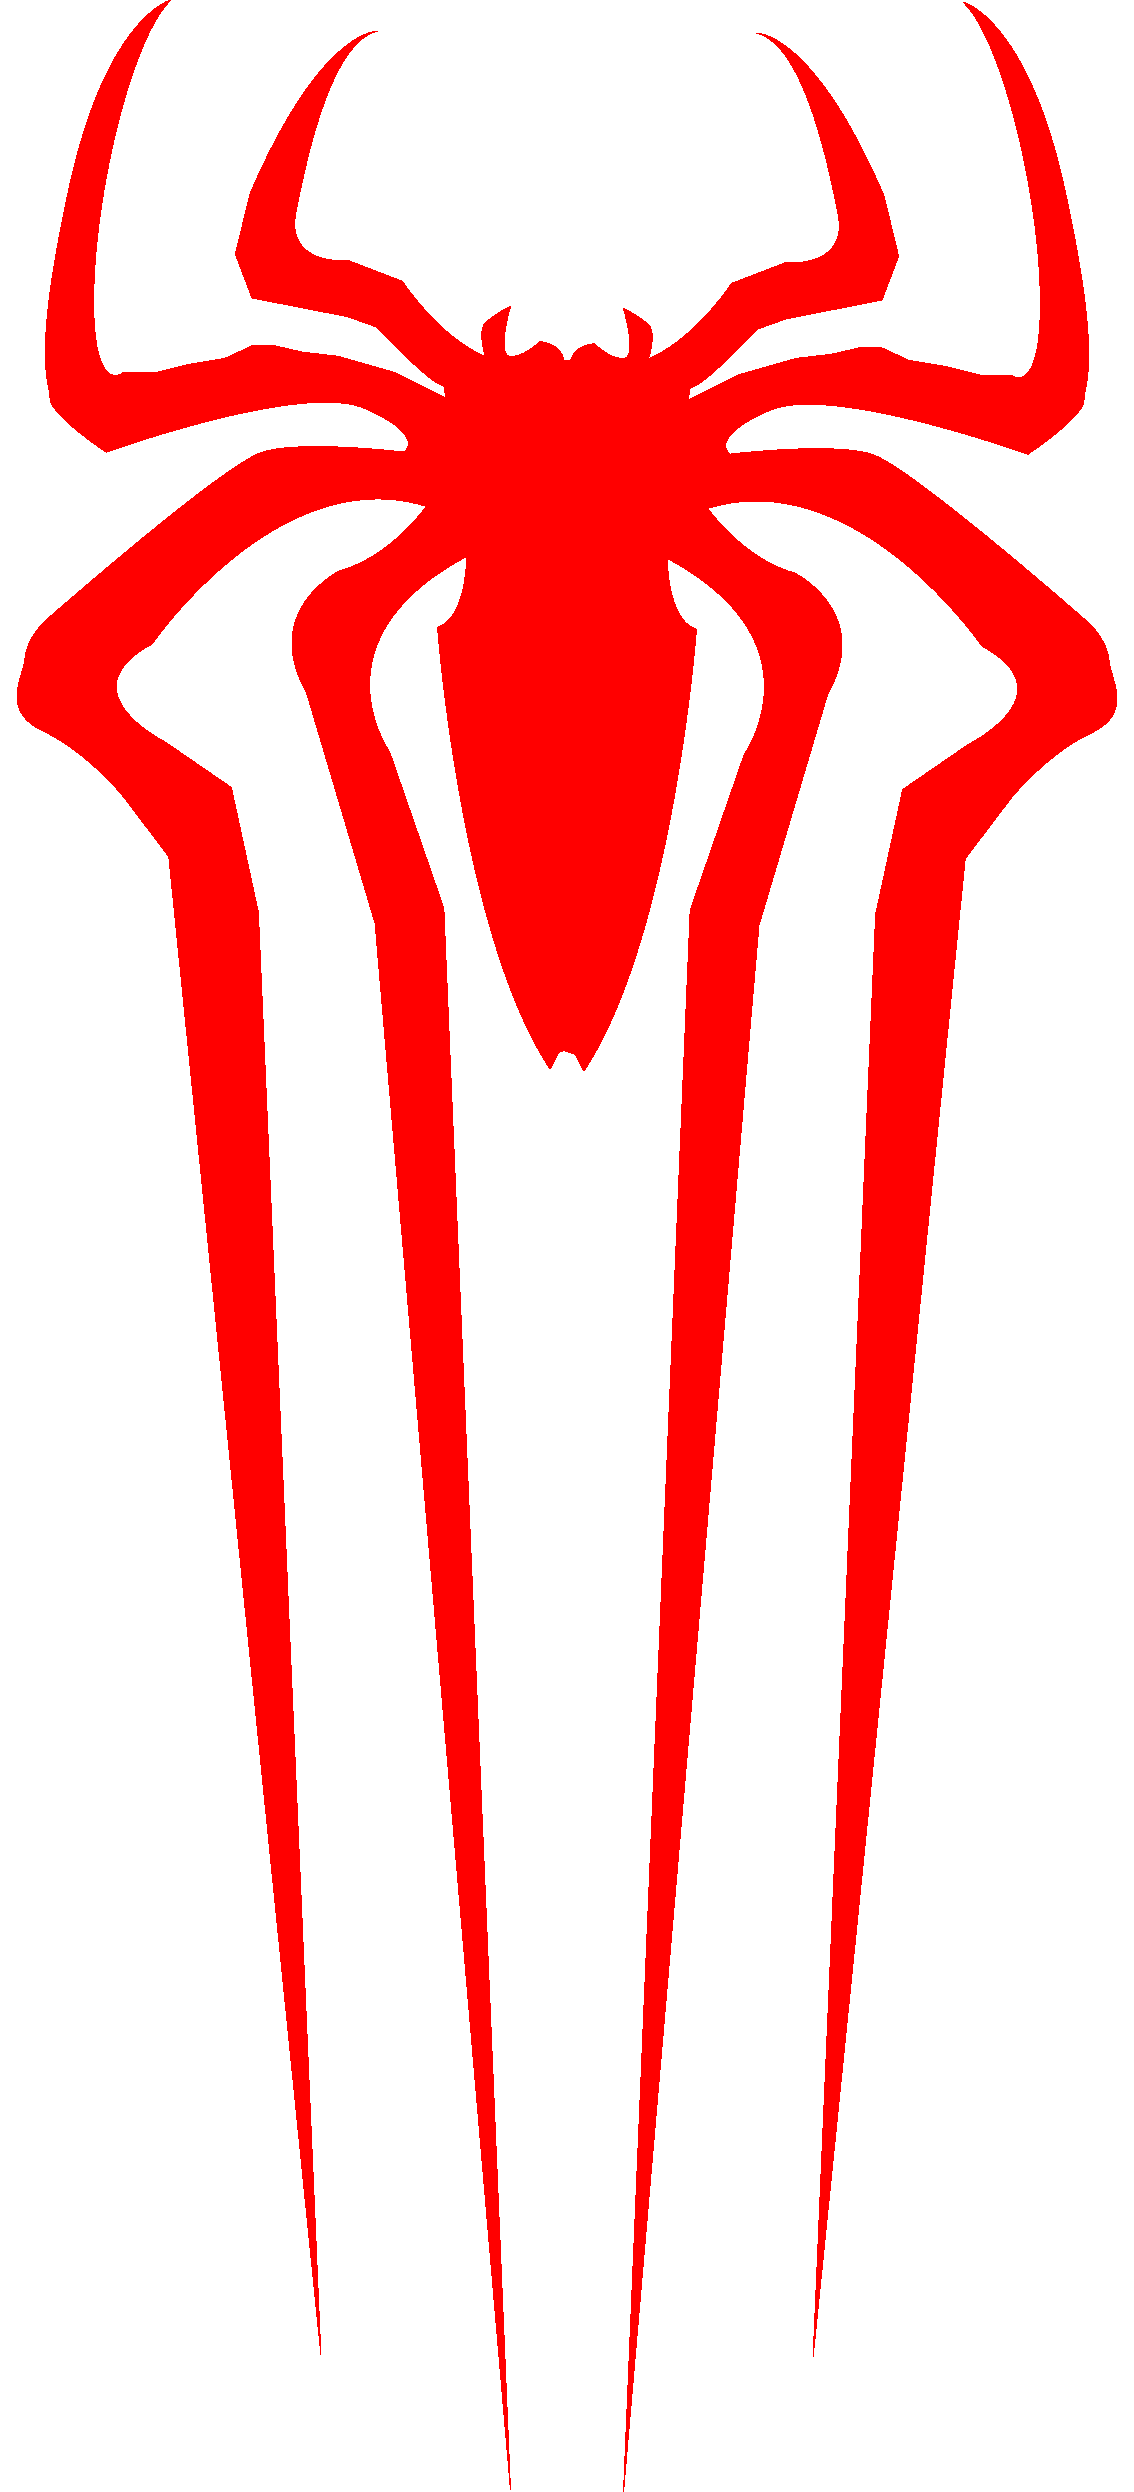 The Amazing Spider Man 2 Front Logo By Strongcactus D5W9Gkw   Copy.png - Spiderman, Transparent background PNG HD thumbnail